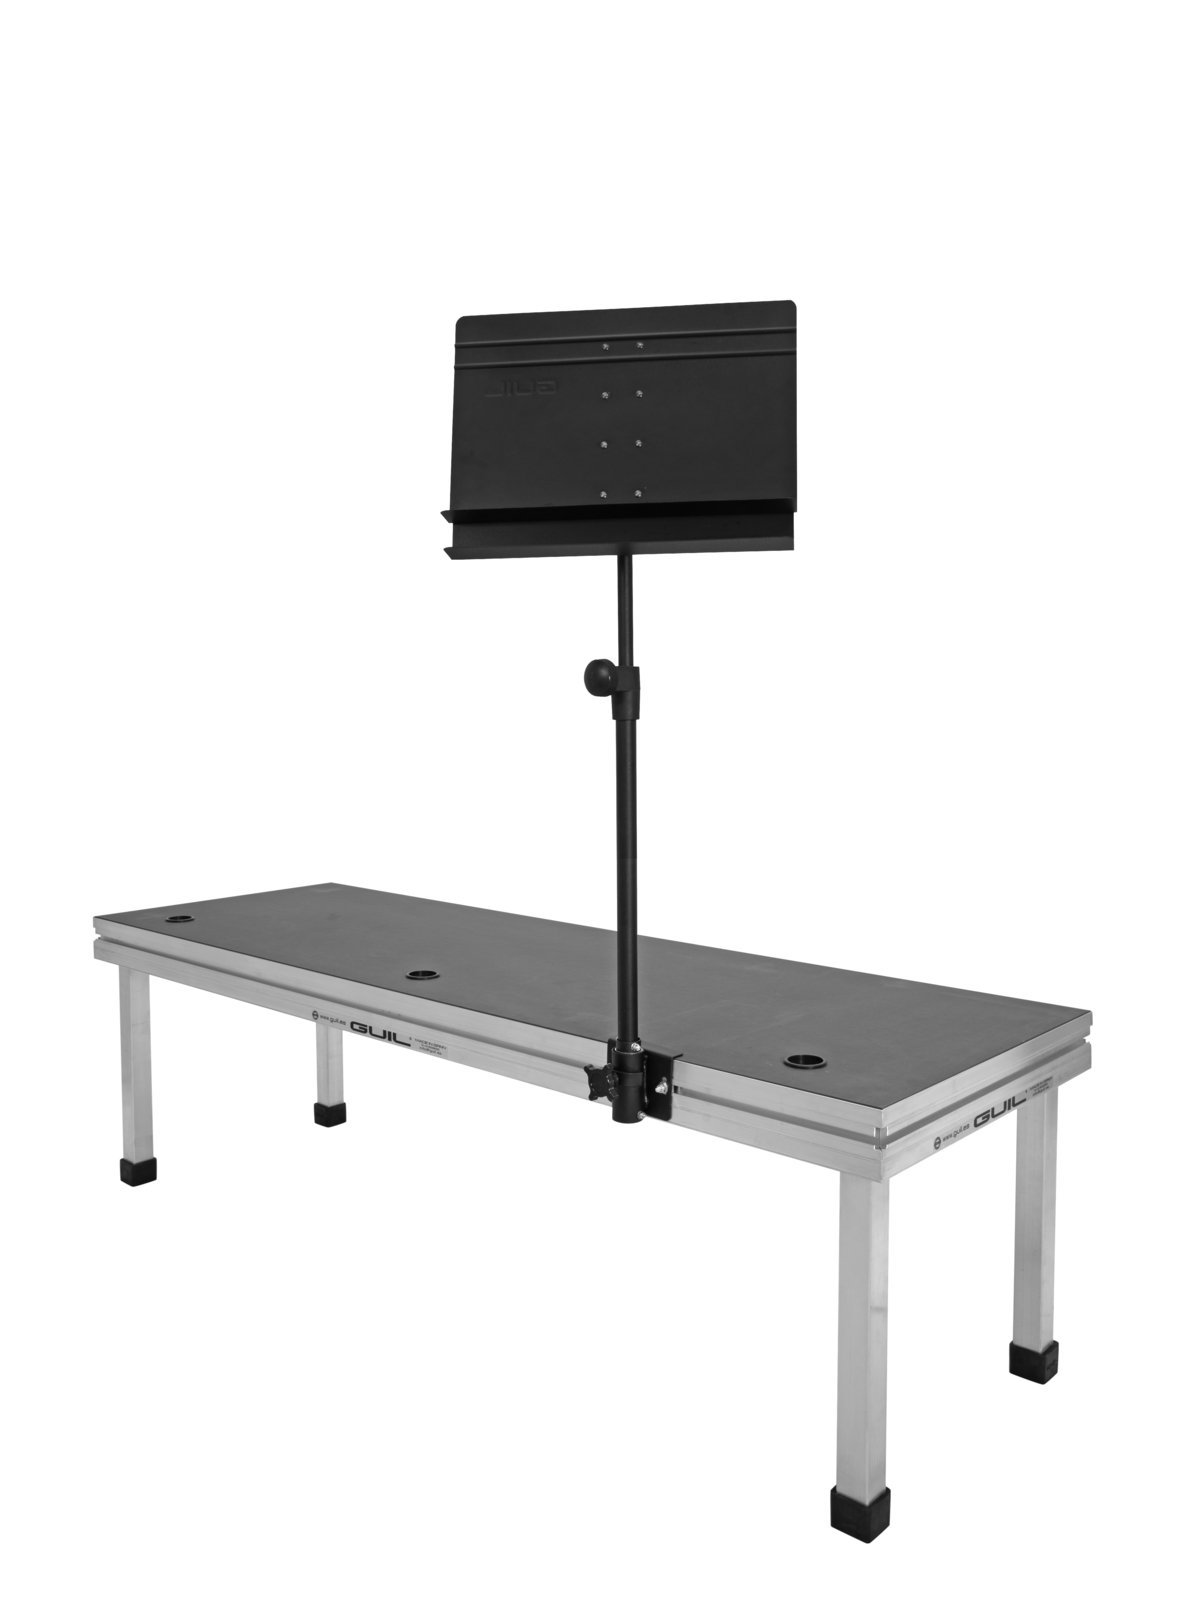 GUIL A/TM-01/440 Music stand